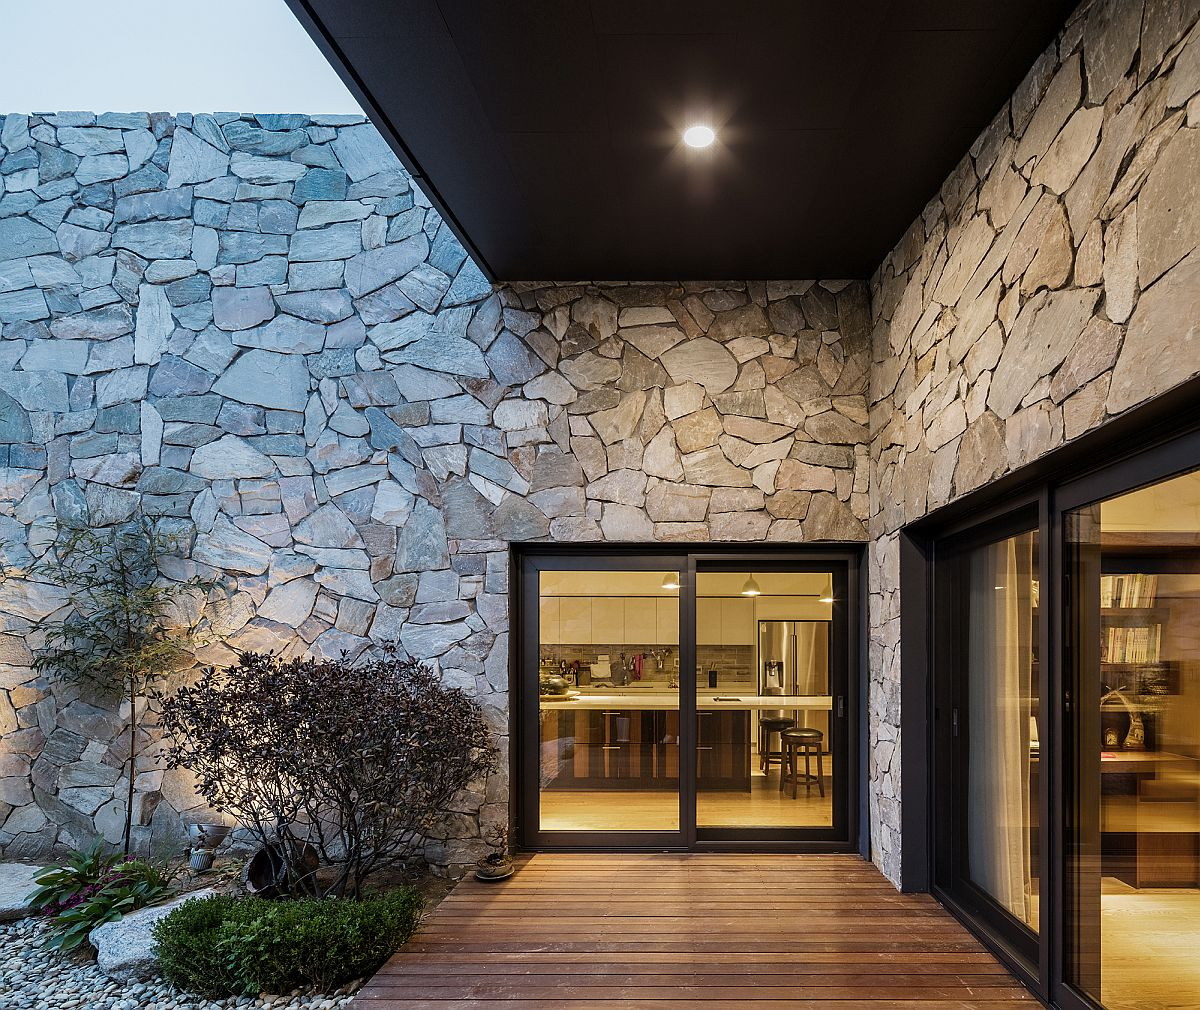 The Layers Serene Rustic Retreat With Stone Walls Blends